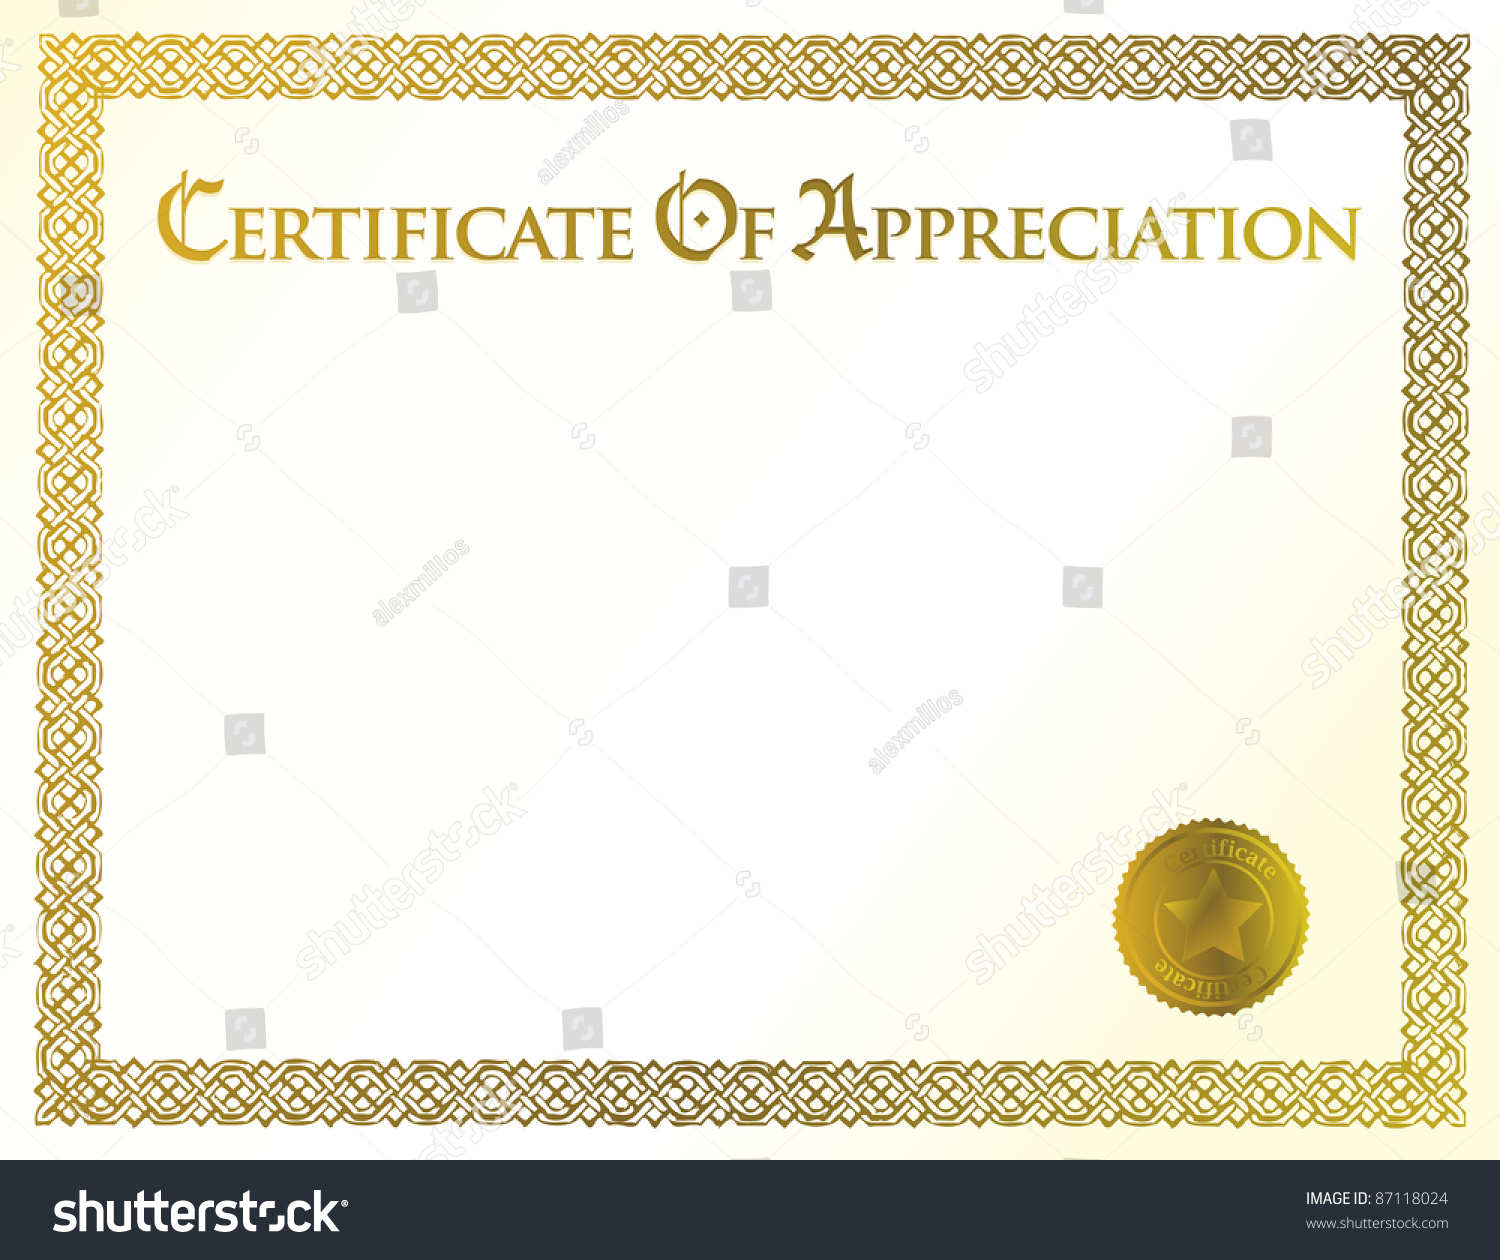 template for a certificate of achievement - certificate of achievement template just b cause